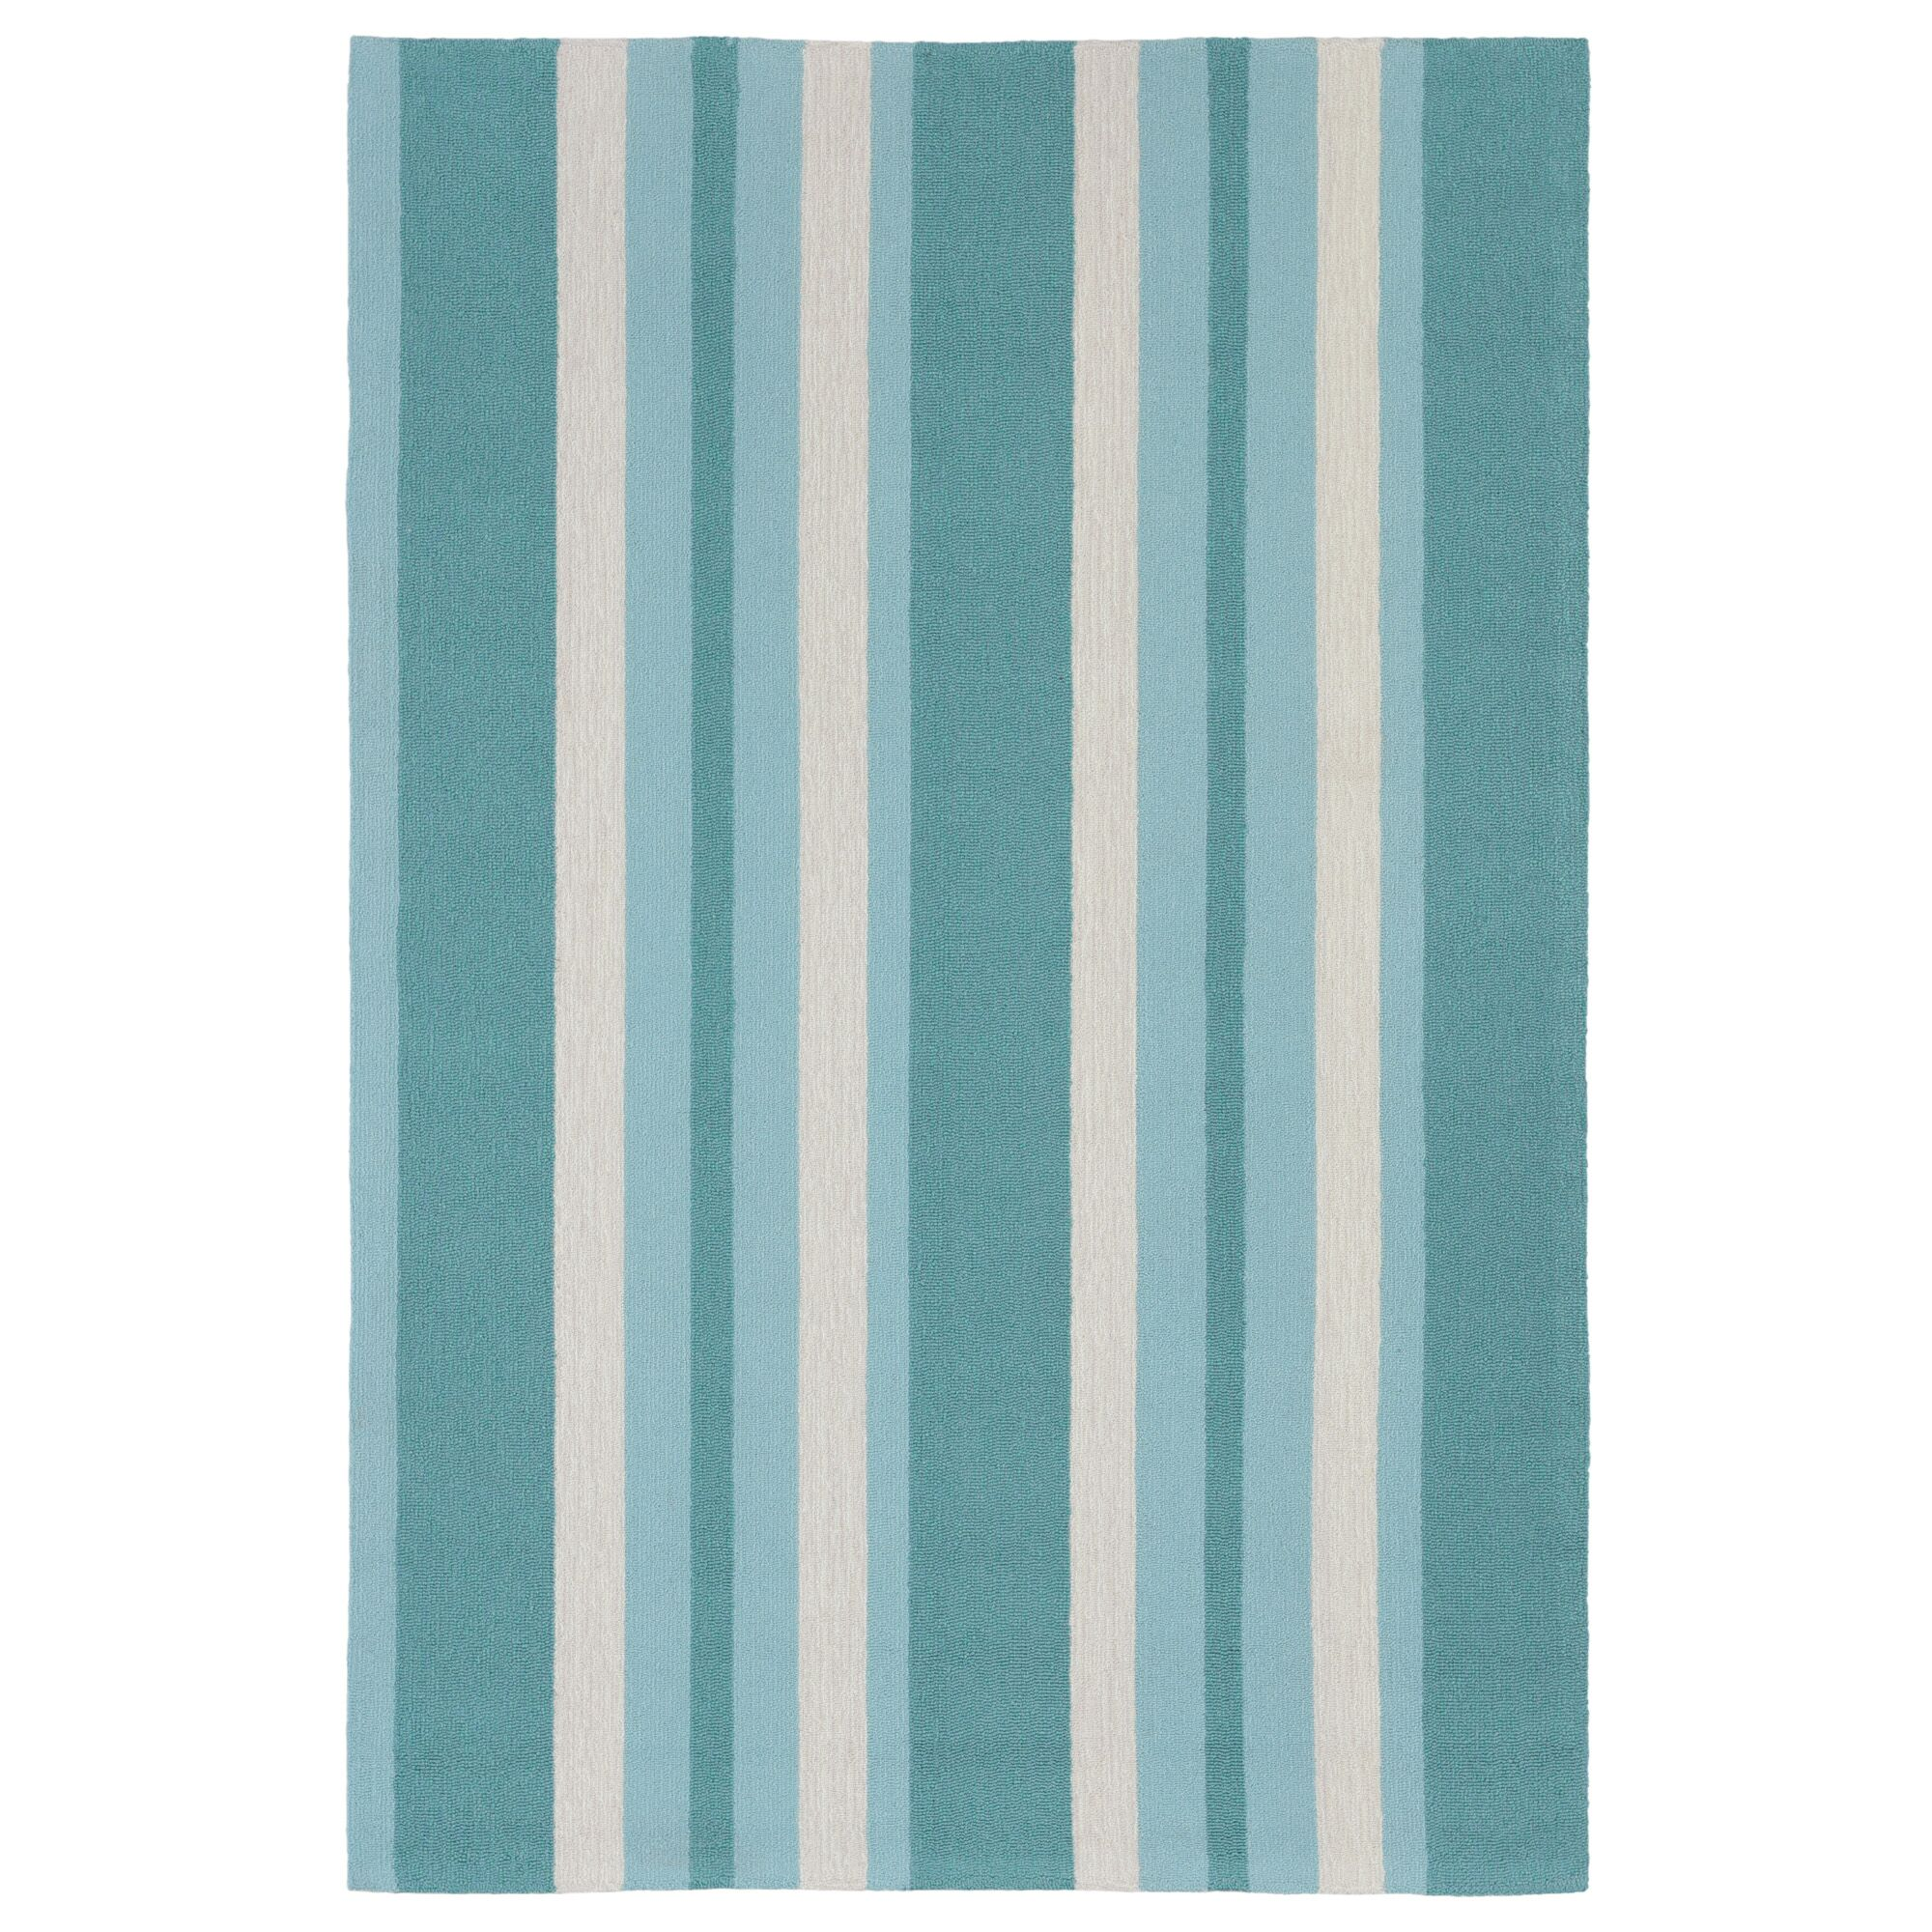 Cranford Stripe Hand-Tufted Blue/Beige Indoor/Outdoor Area Rug Rug Size: Rectangle 8'3